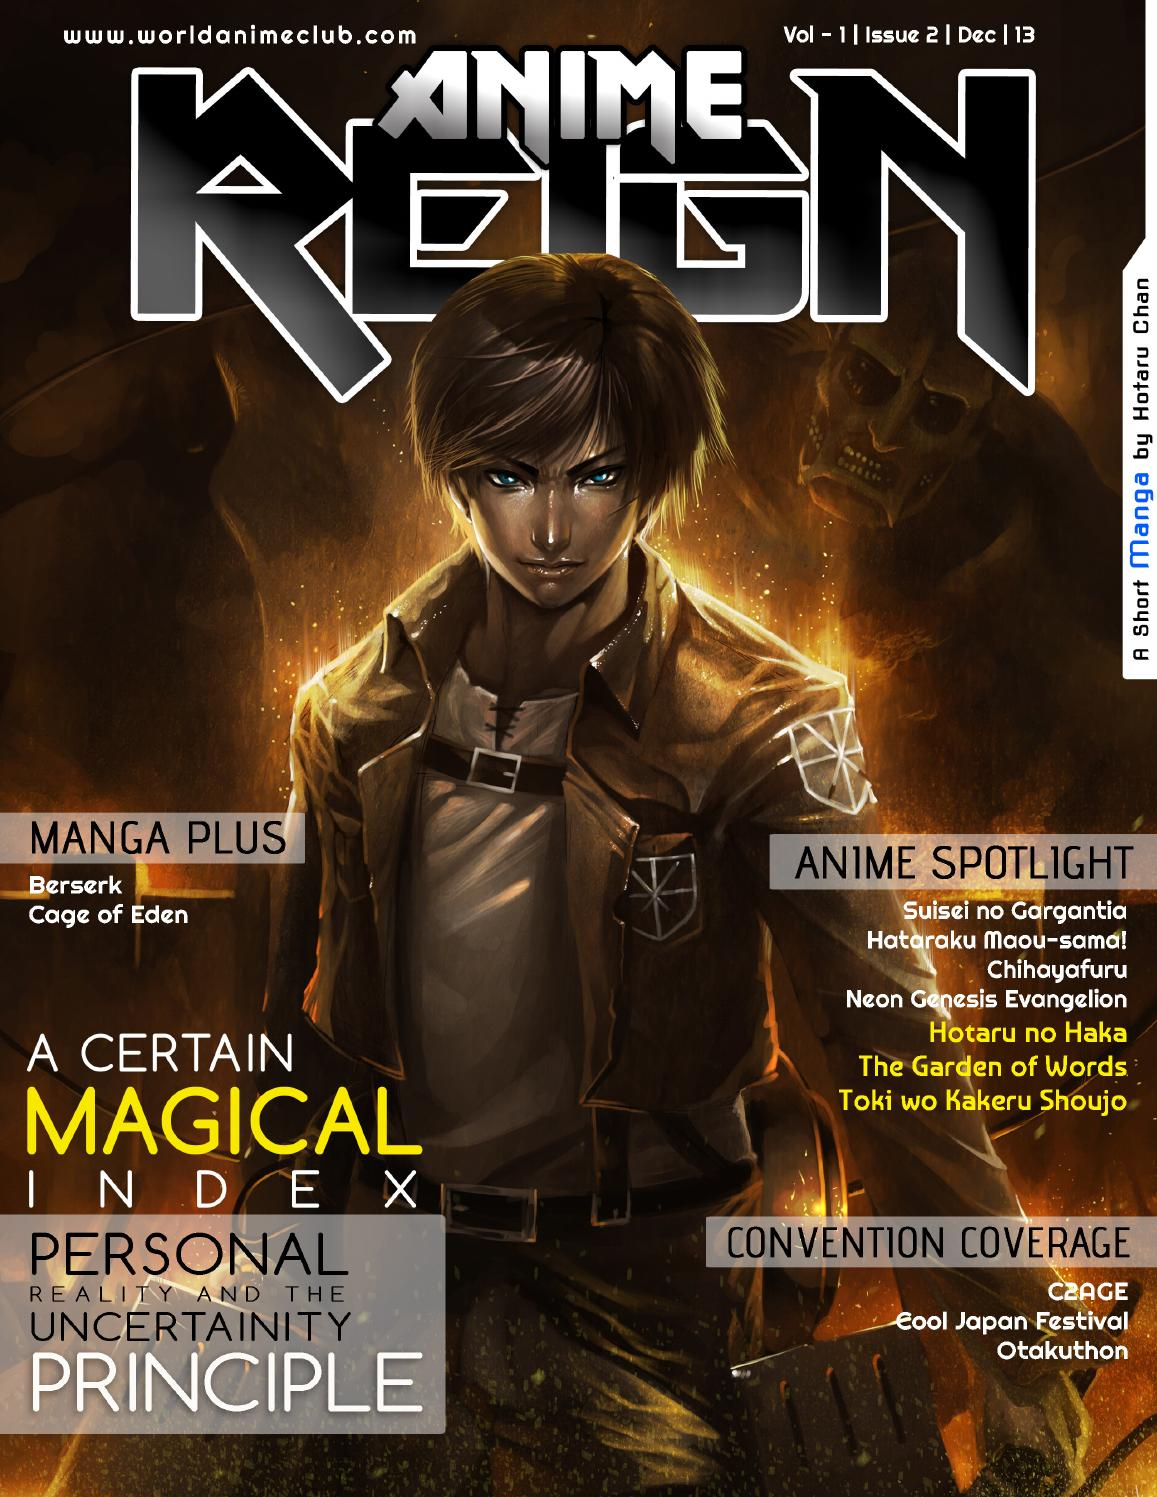 Anime Reign | Volume 1 | Issue 2 | 2013 by World Anime Club - issuu